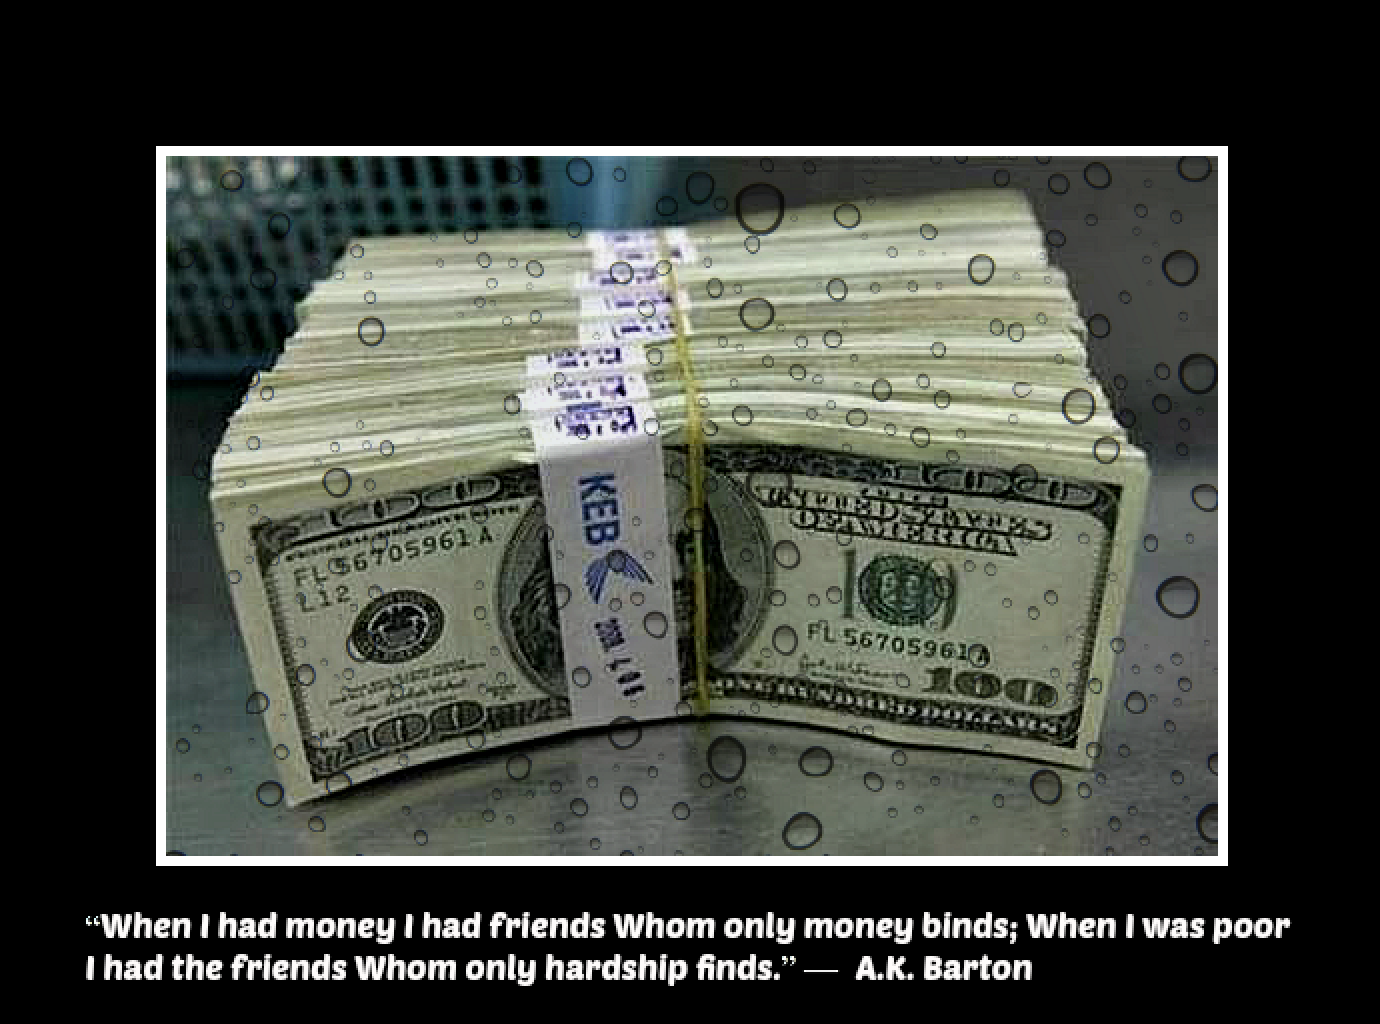 Get Money Quotes Quotesgram. Union Fidelity Life Insurance. Careers In Mortgage Lending Ip Pbx Tutorial. Make Money Advertising Online. Pronto Insurance Reviews Do I Have A Tax Lien. Phoenix Bathroom Remodel It Security Strategy. Enterprise Data Management Nc Insurance Agent. Prognosis For Mesothelioma Chrysler Super Bee. Washing Machine Water Consumption